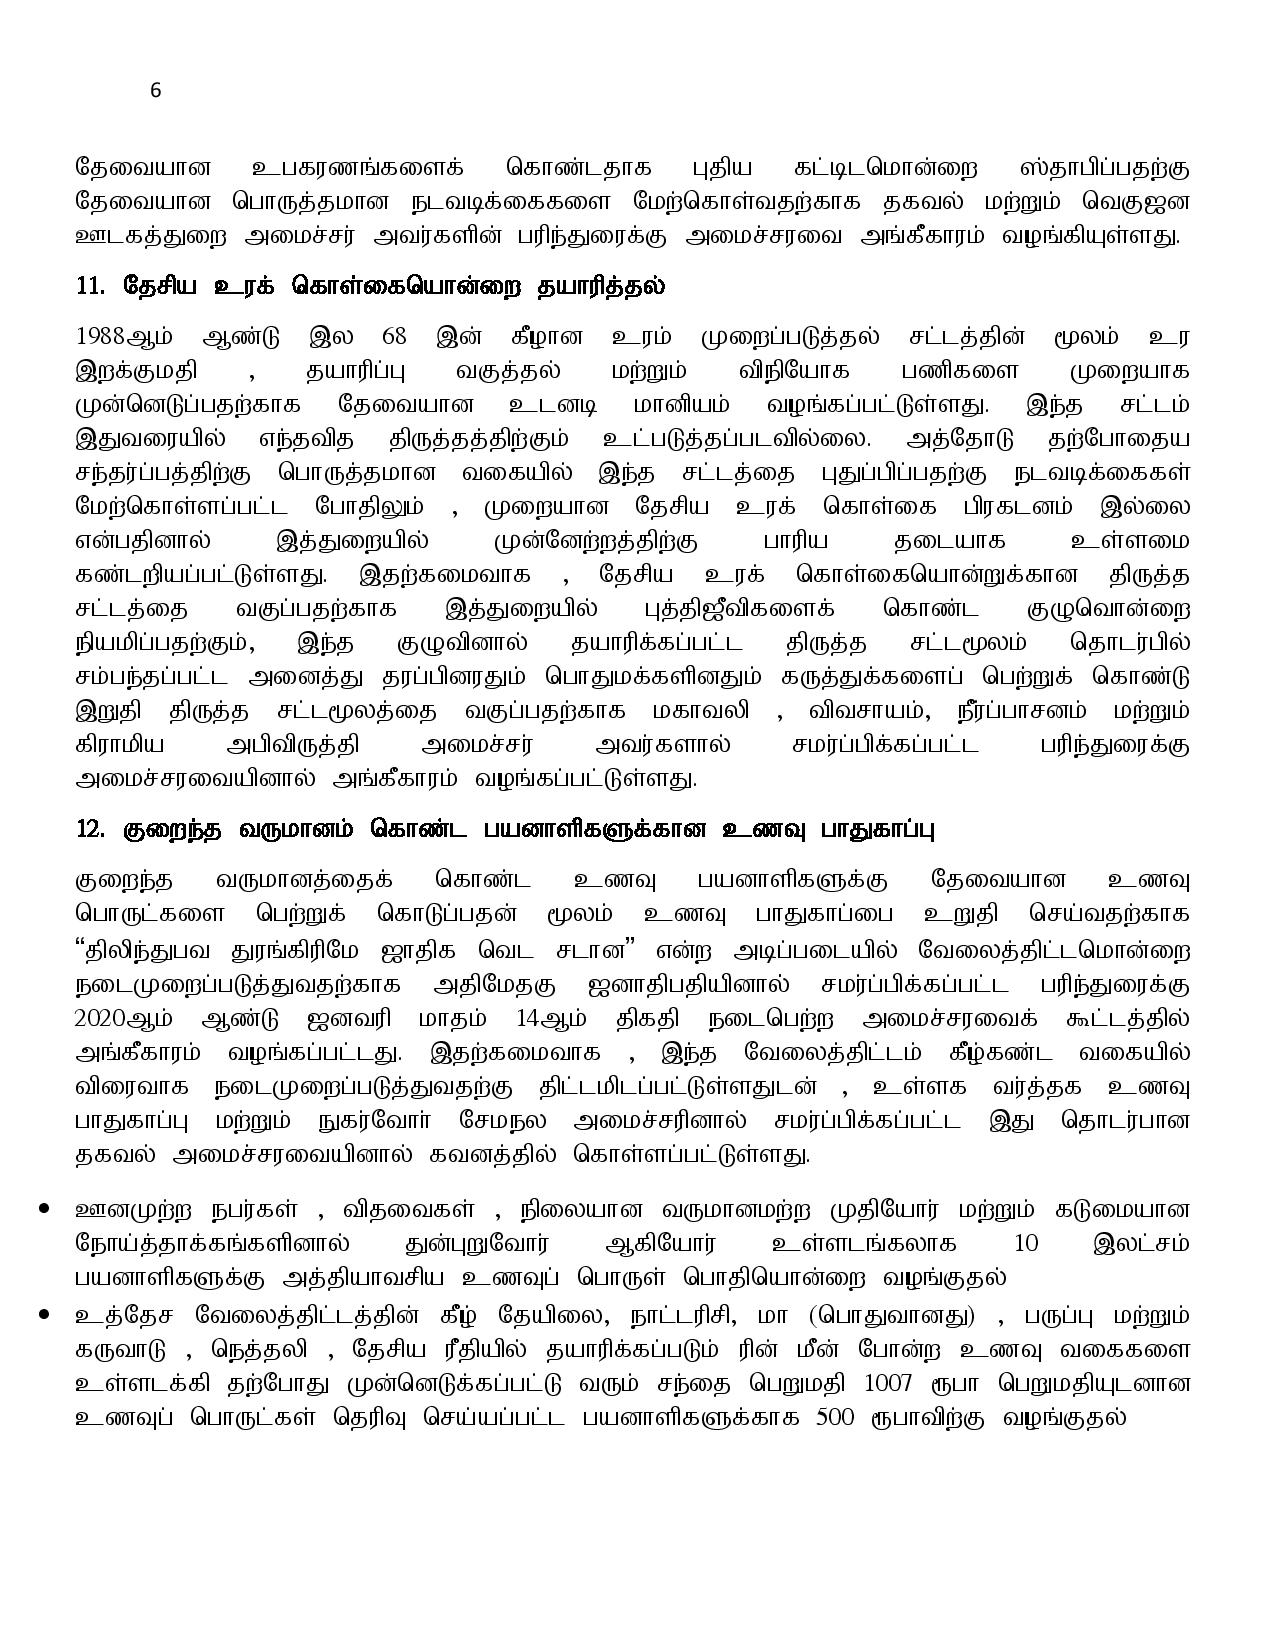 04.03.2020 cabinet Tamil page 006